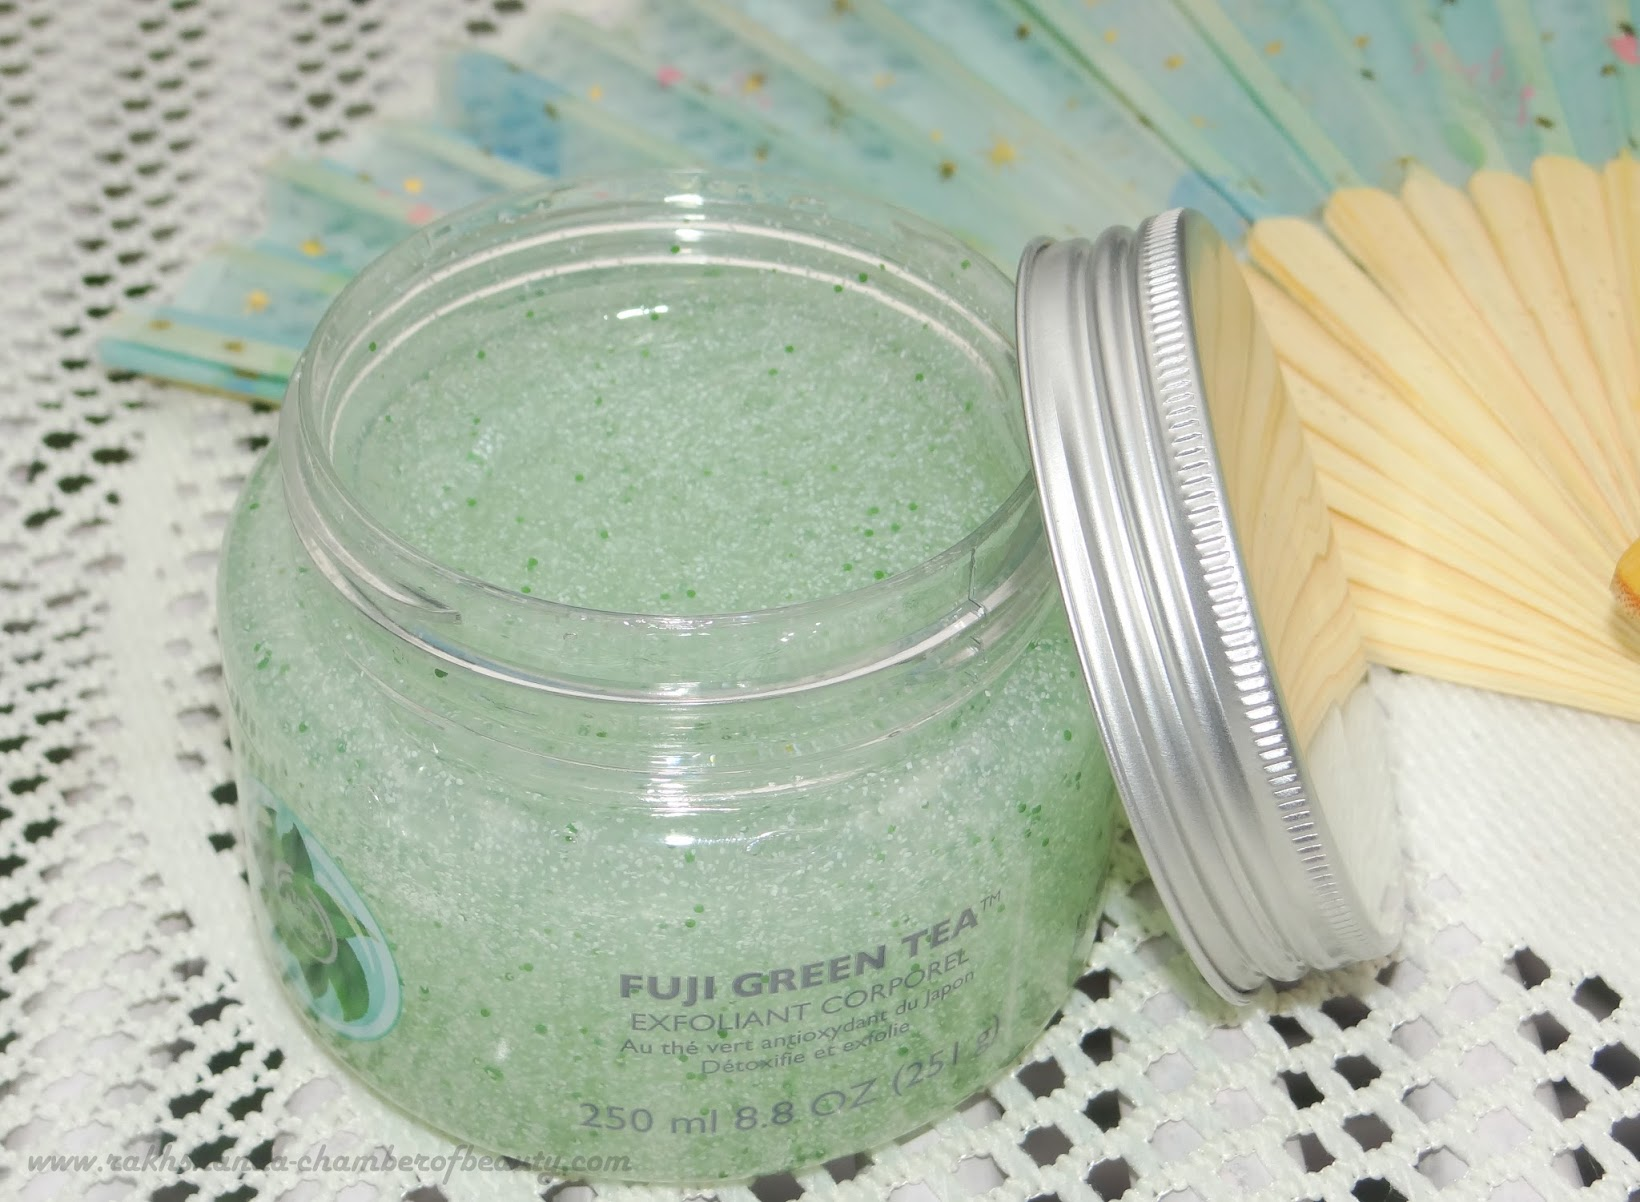 The Body Shop Fuji Green tea Body Butter & Scrub-review, price in India+Giveaway